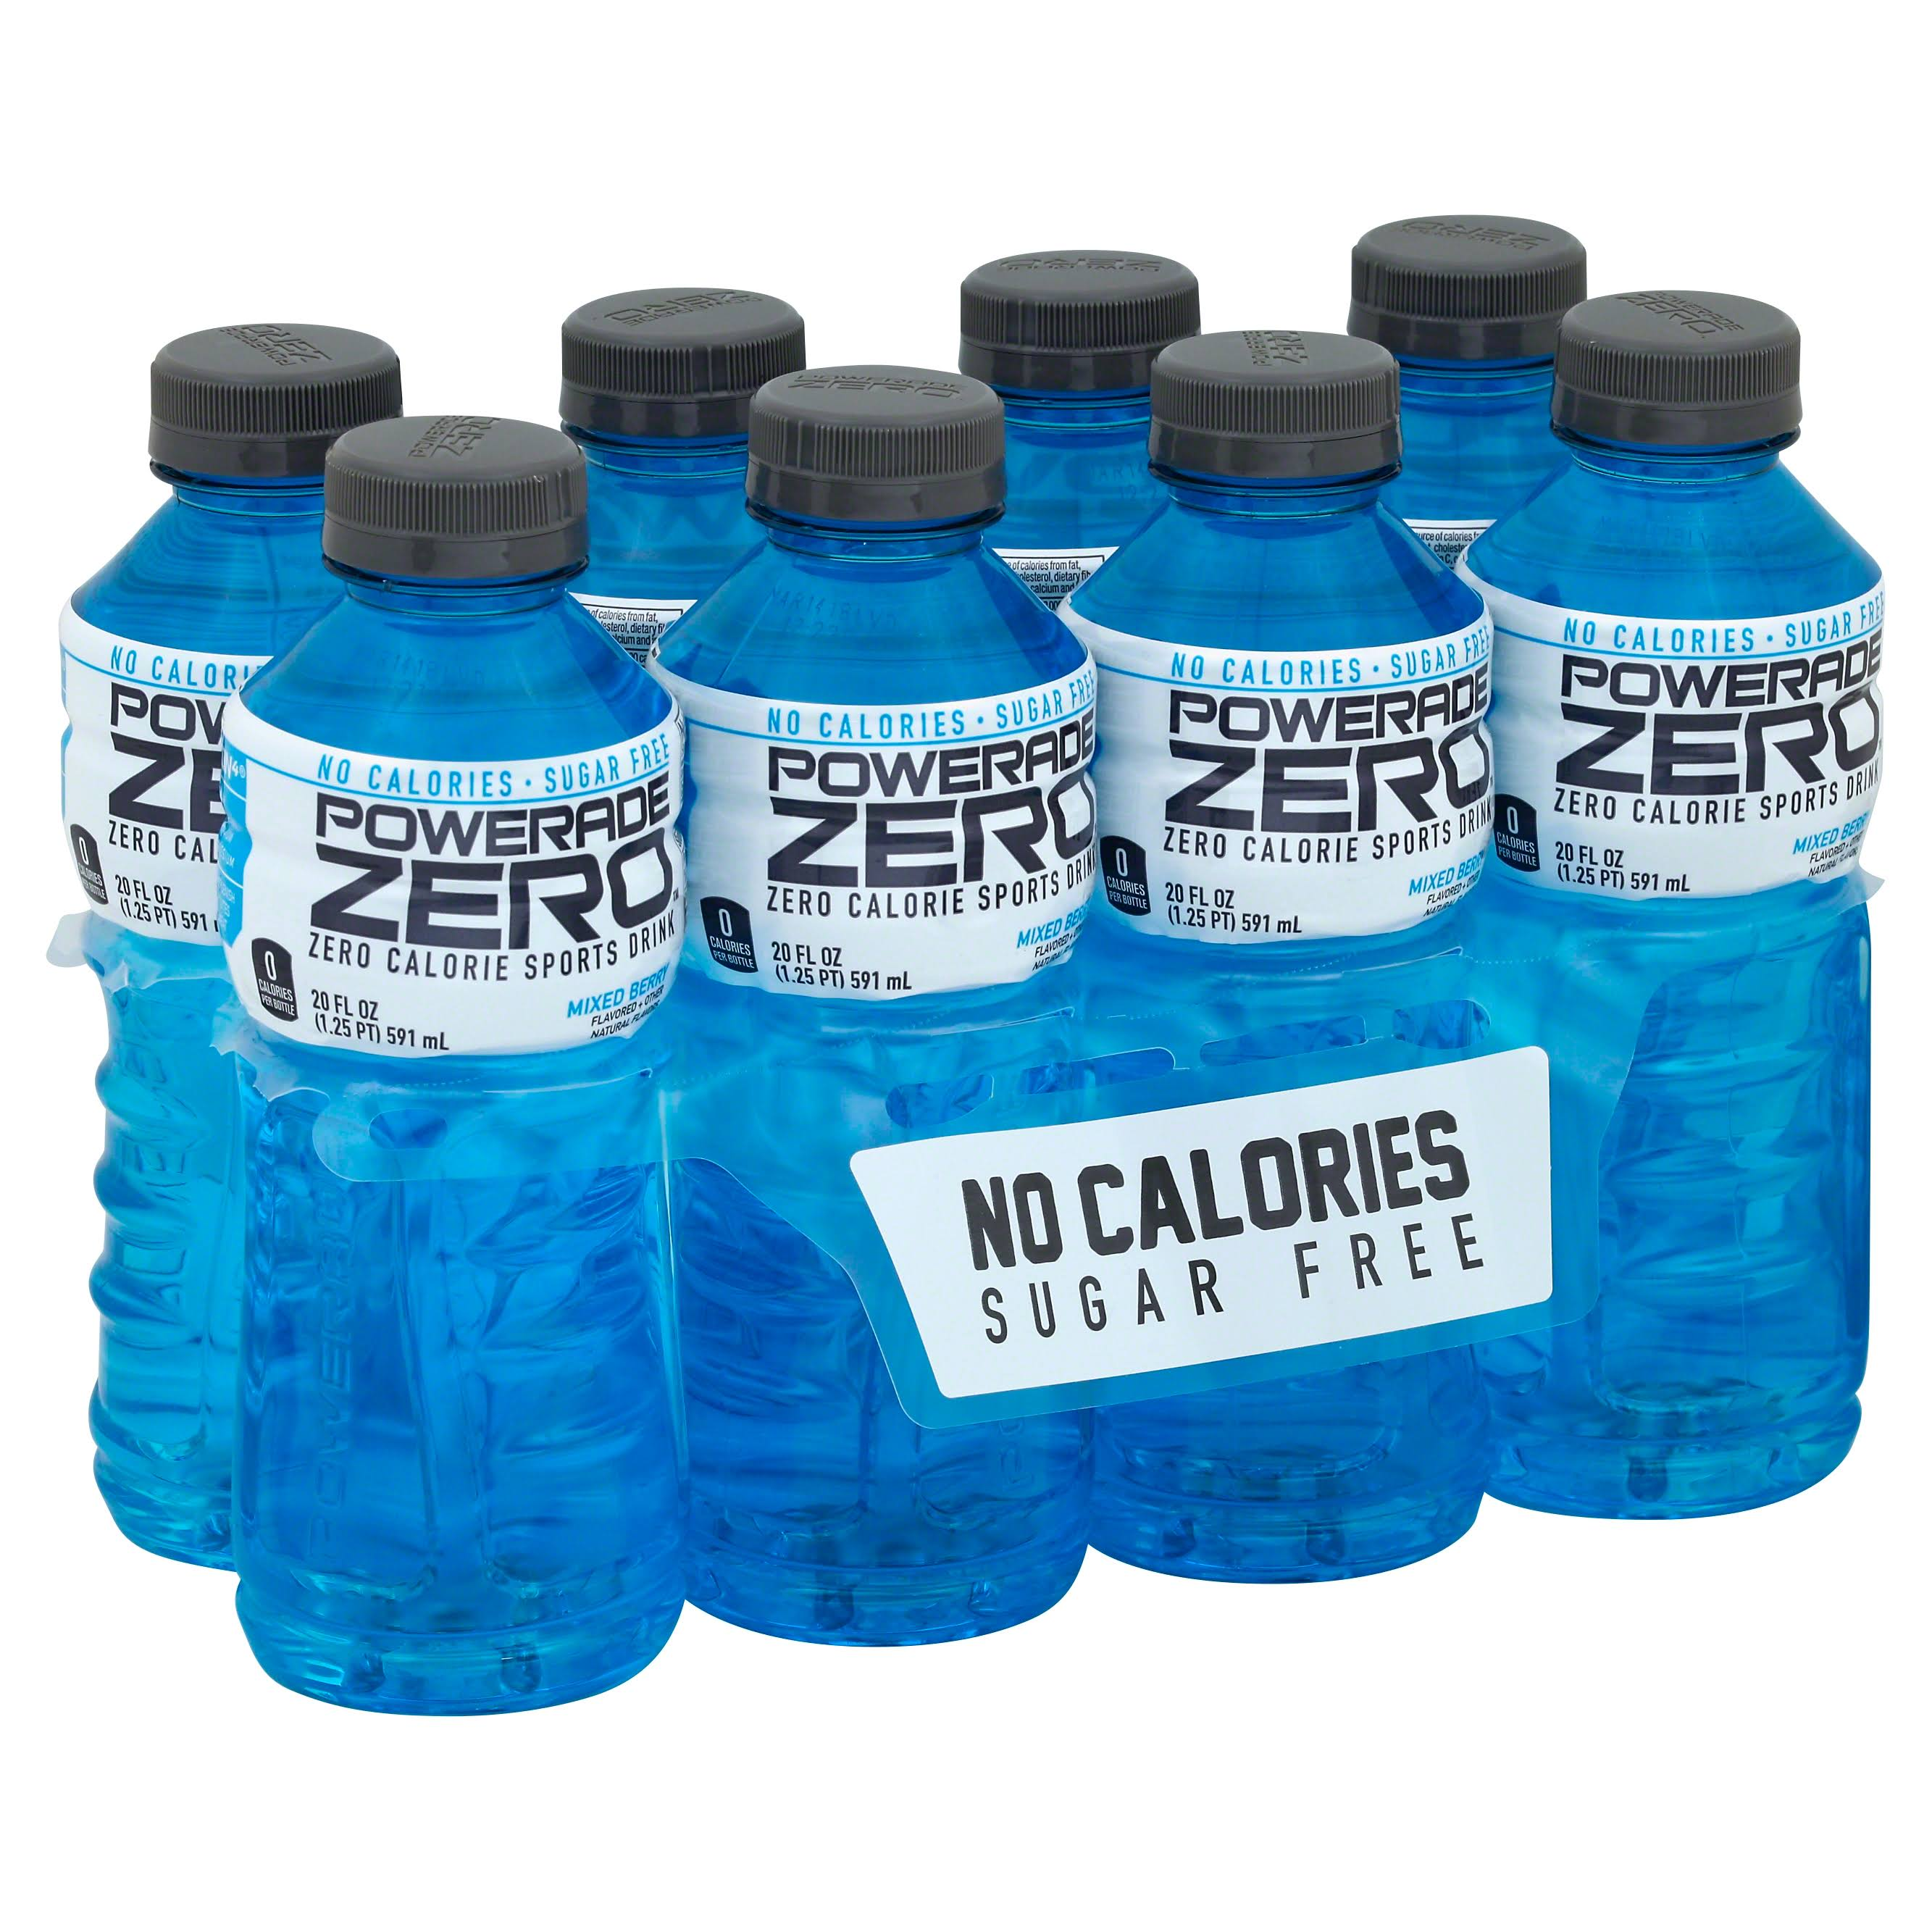 Powerade Sports Drink, Zero Calorie, Mixed Berry - 8 pack, 20 fl oz